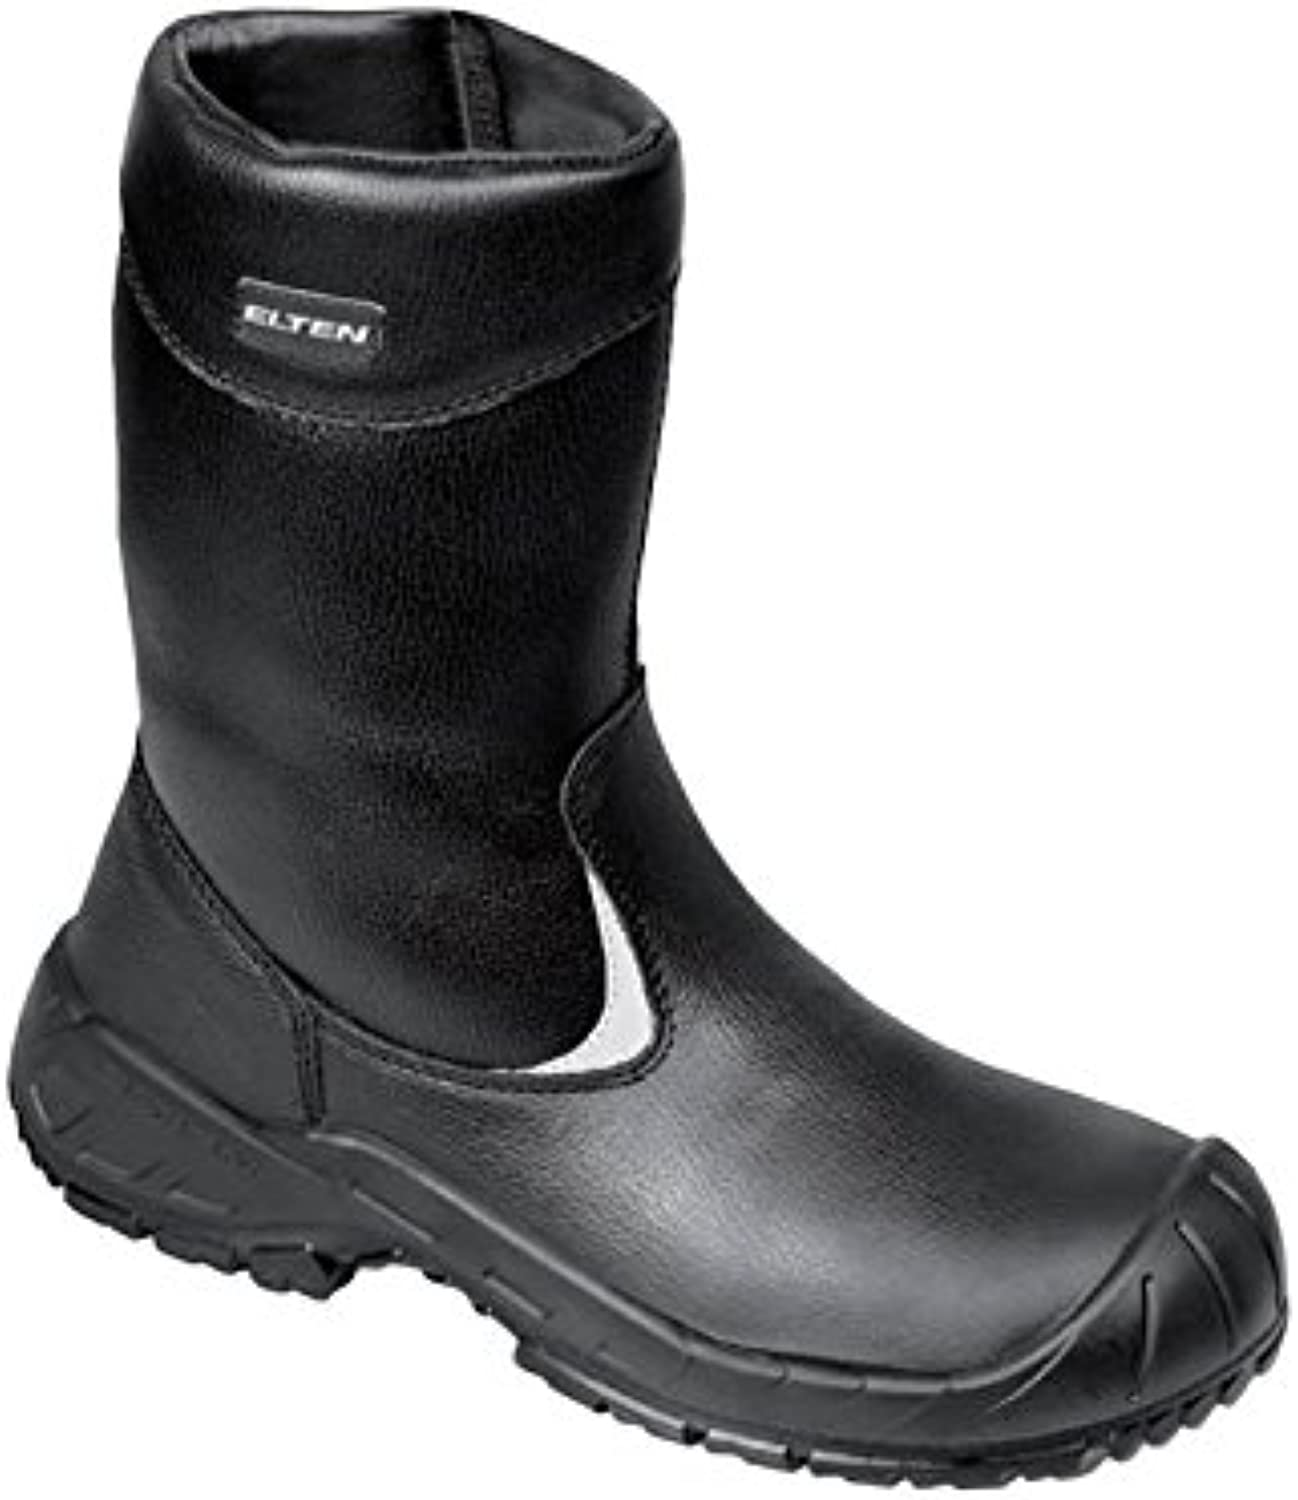 86771-44 Size 44 S3 CI Will  Safety Boot - Multi-Colour